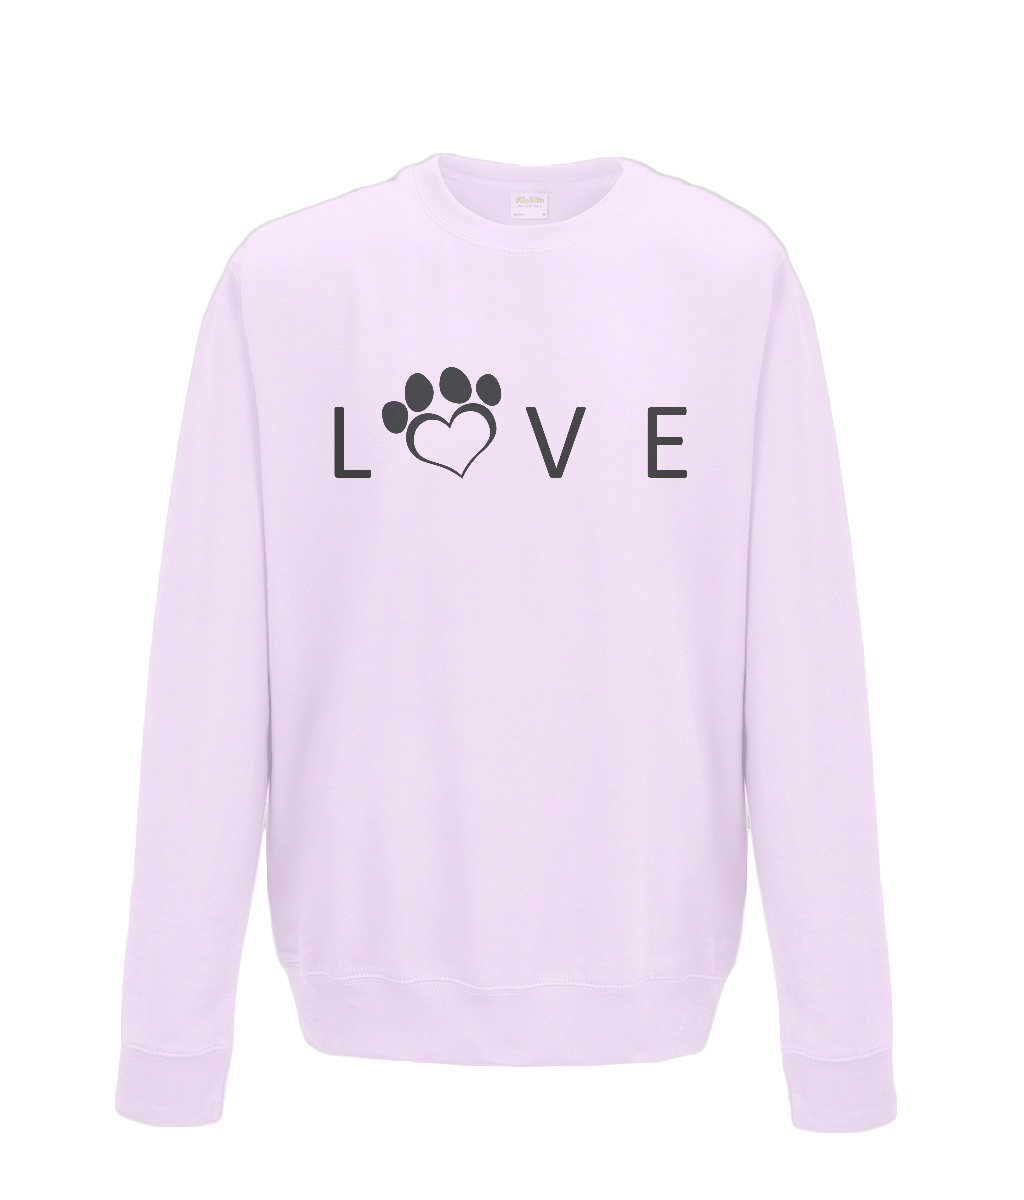 Help For Paws Love Sweatshirt - Black Logo